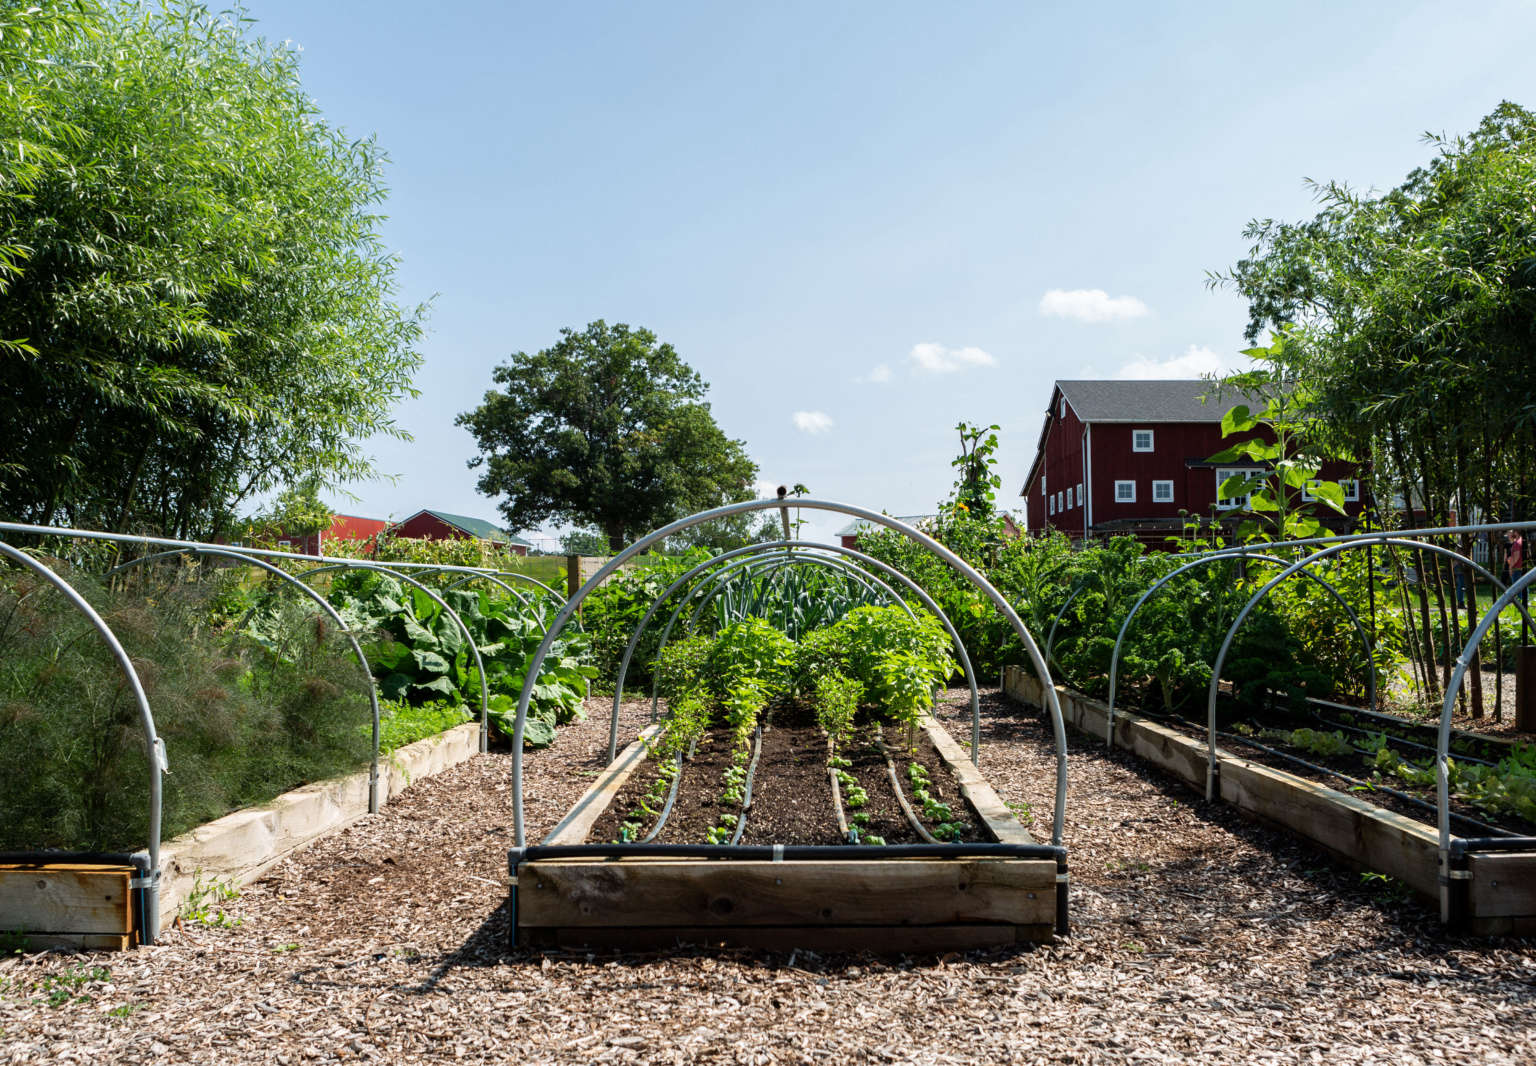 10 Edible Garden Ideas To Steal From Michigan